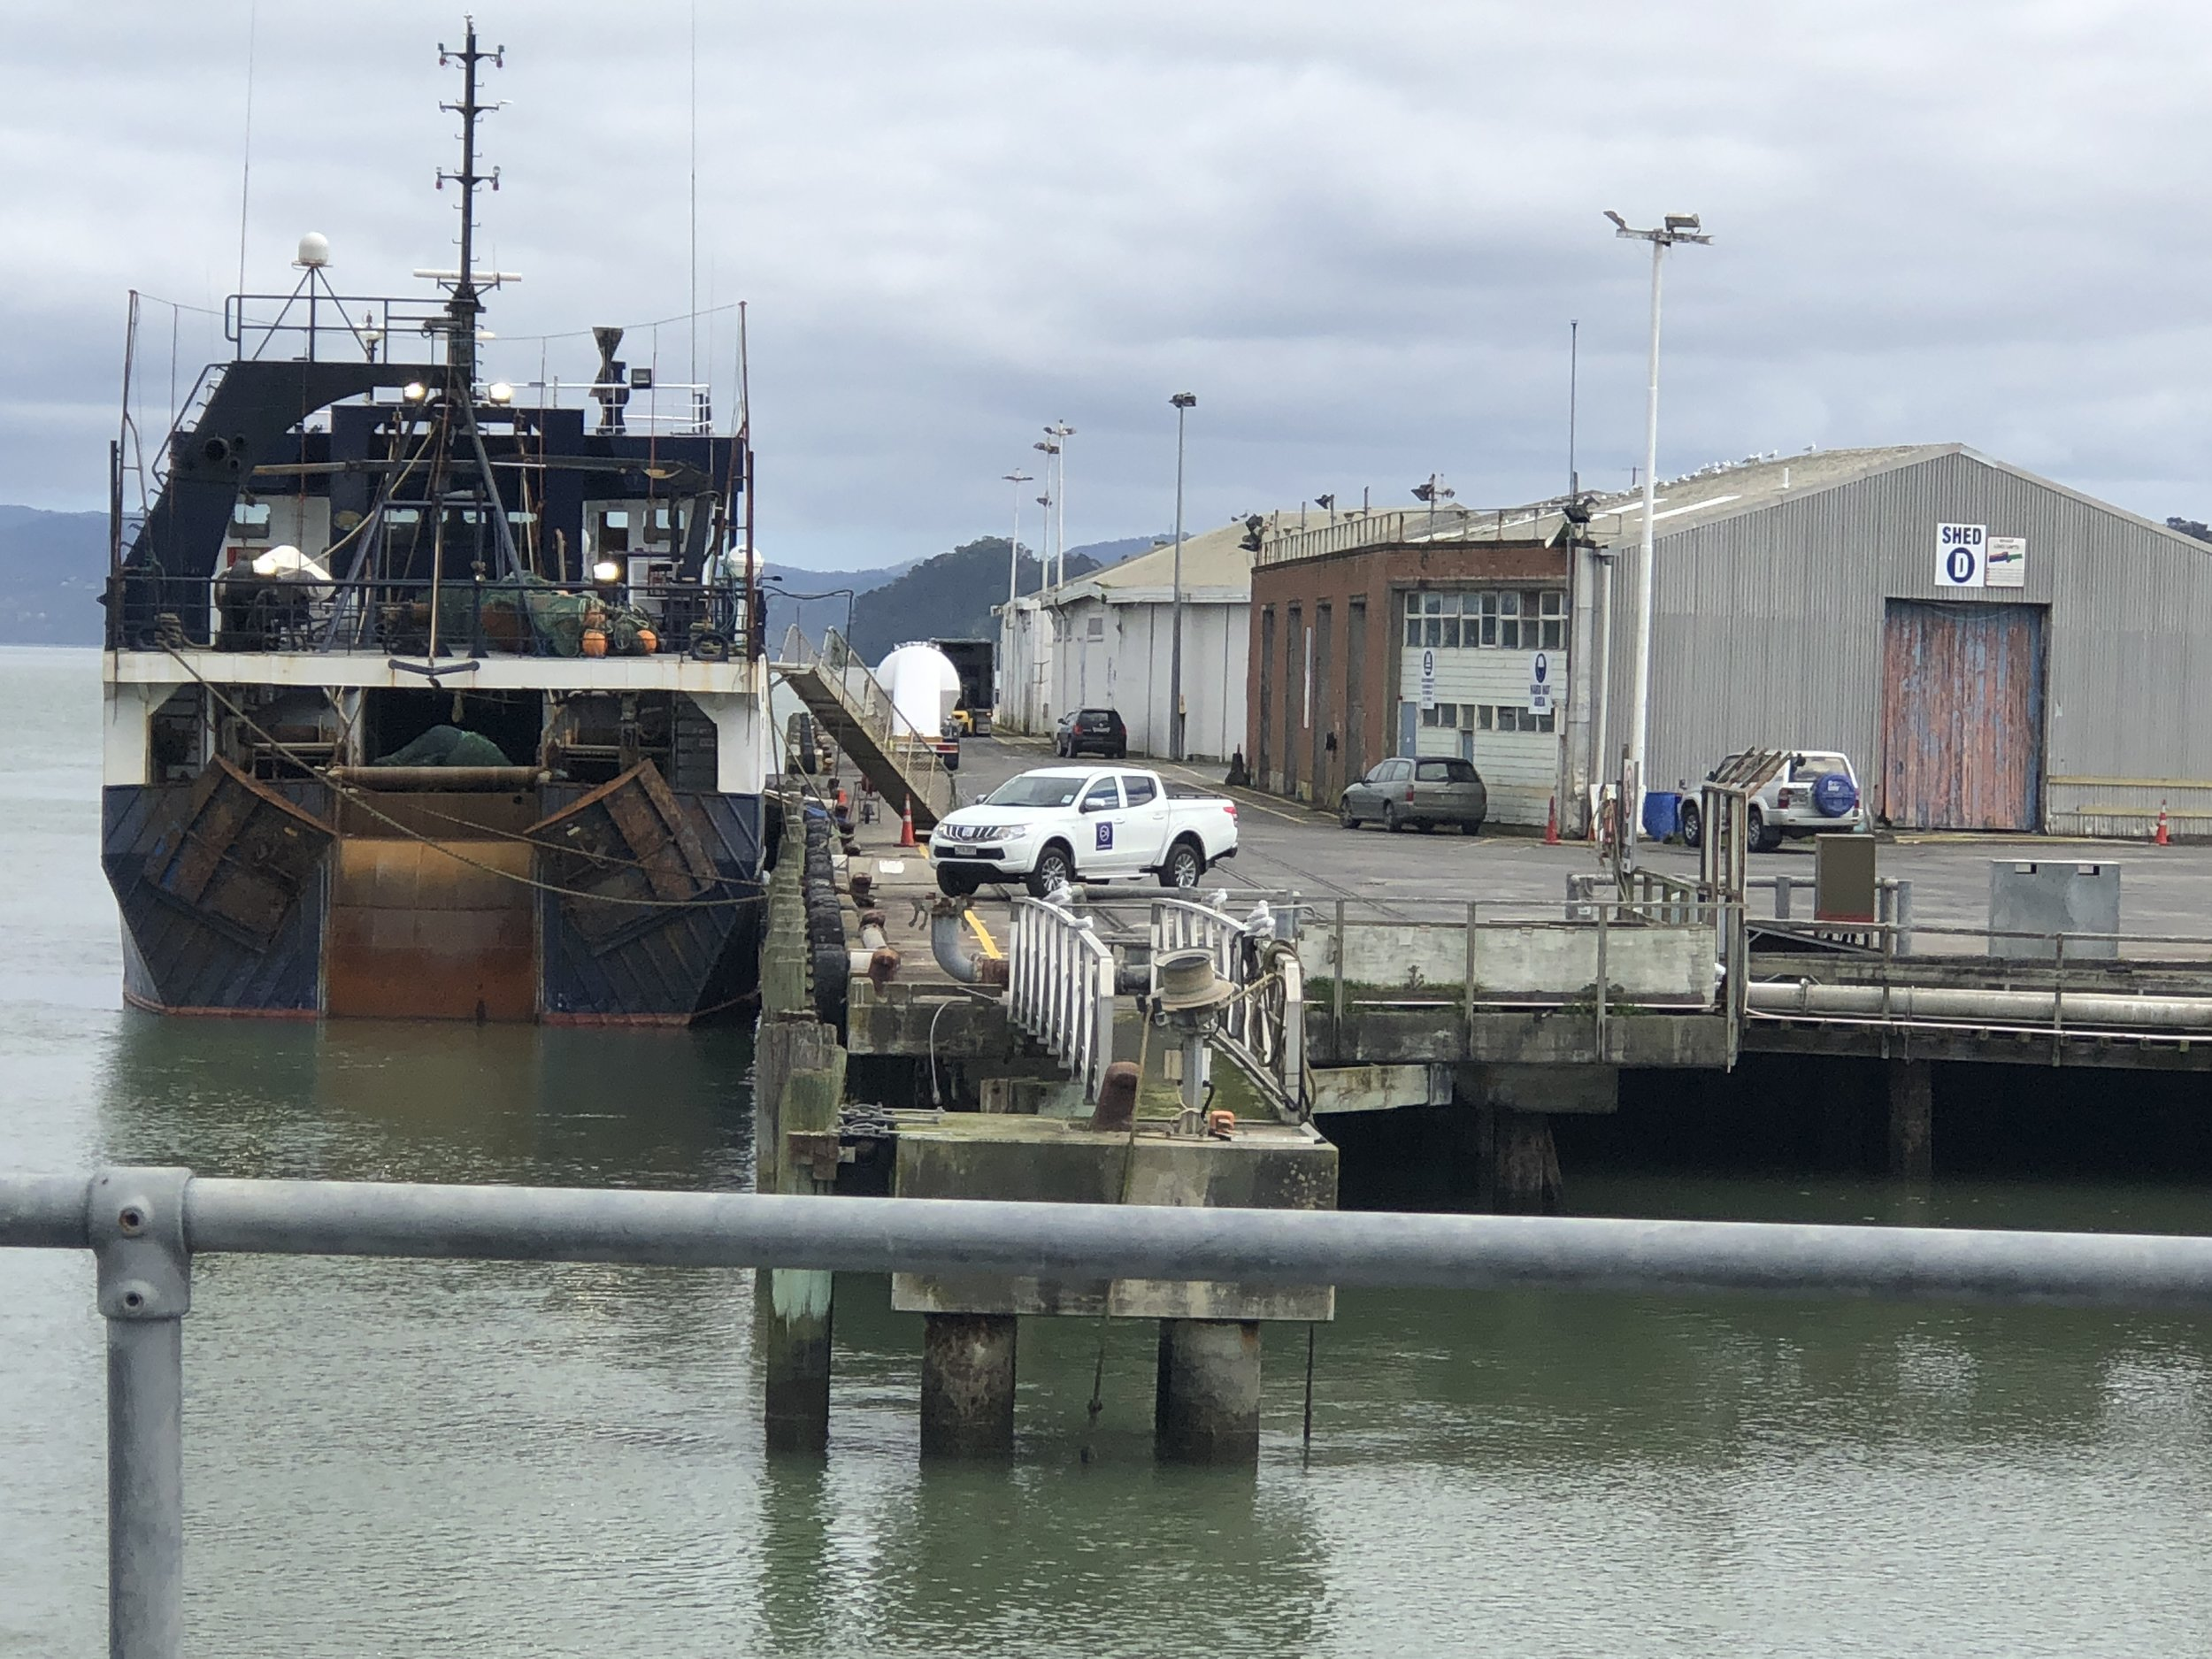 The Onehunga wharf is the only west coast port in Auckland.